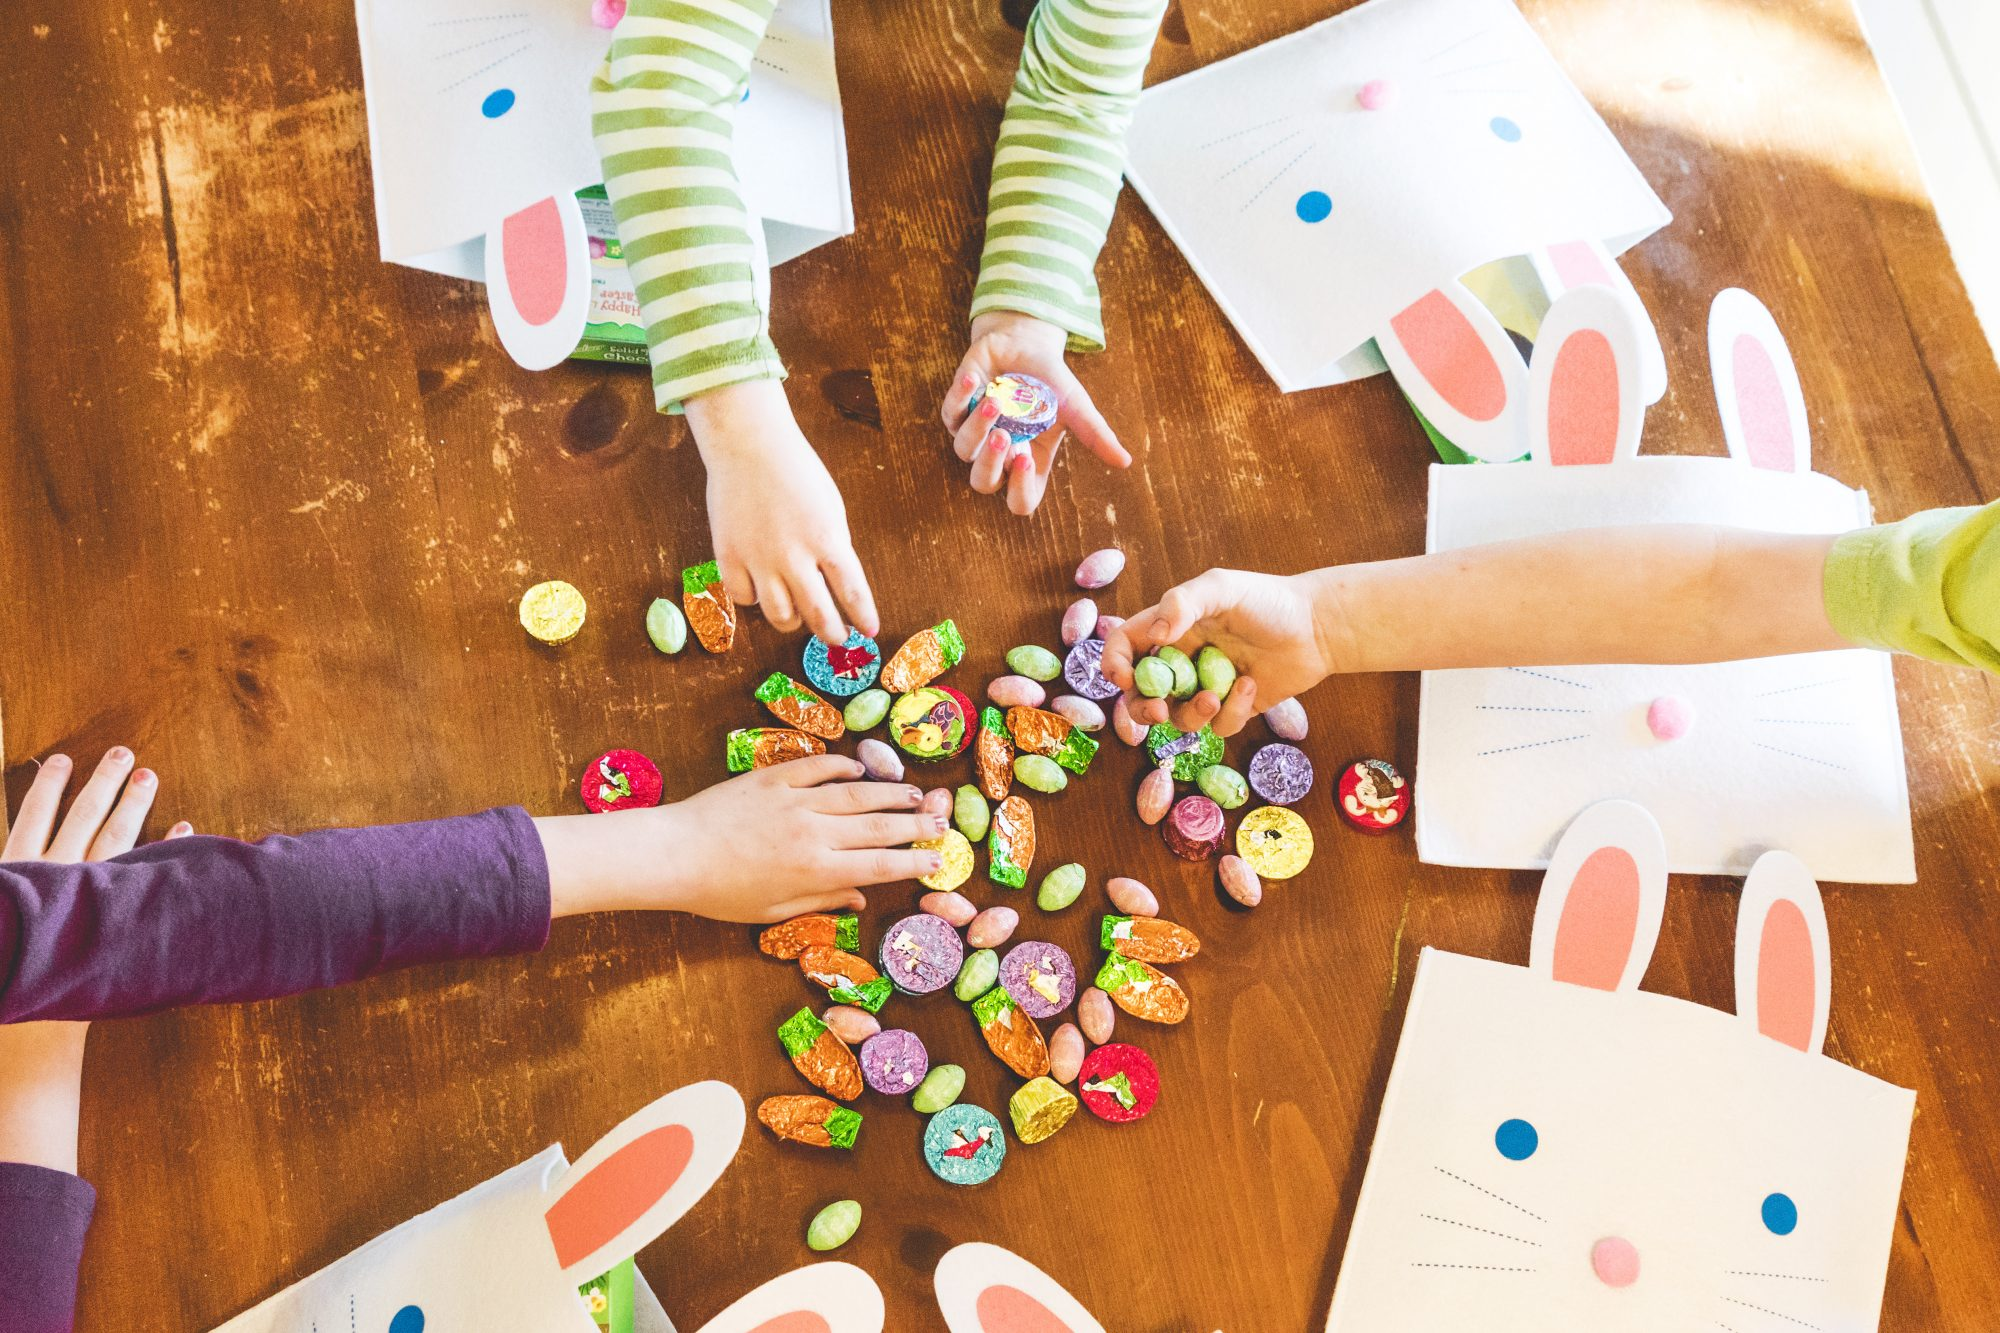 kids reaching for pile of easter candy on table